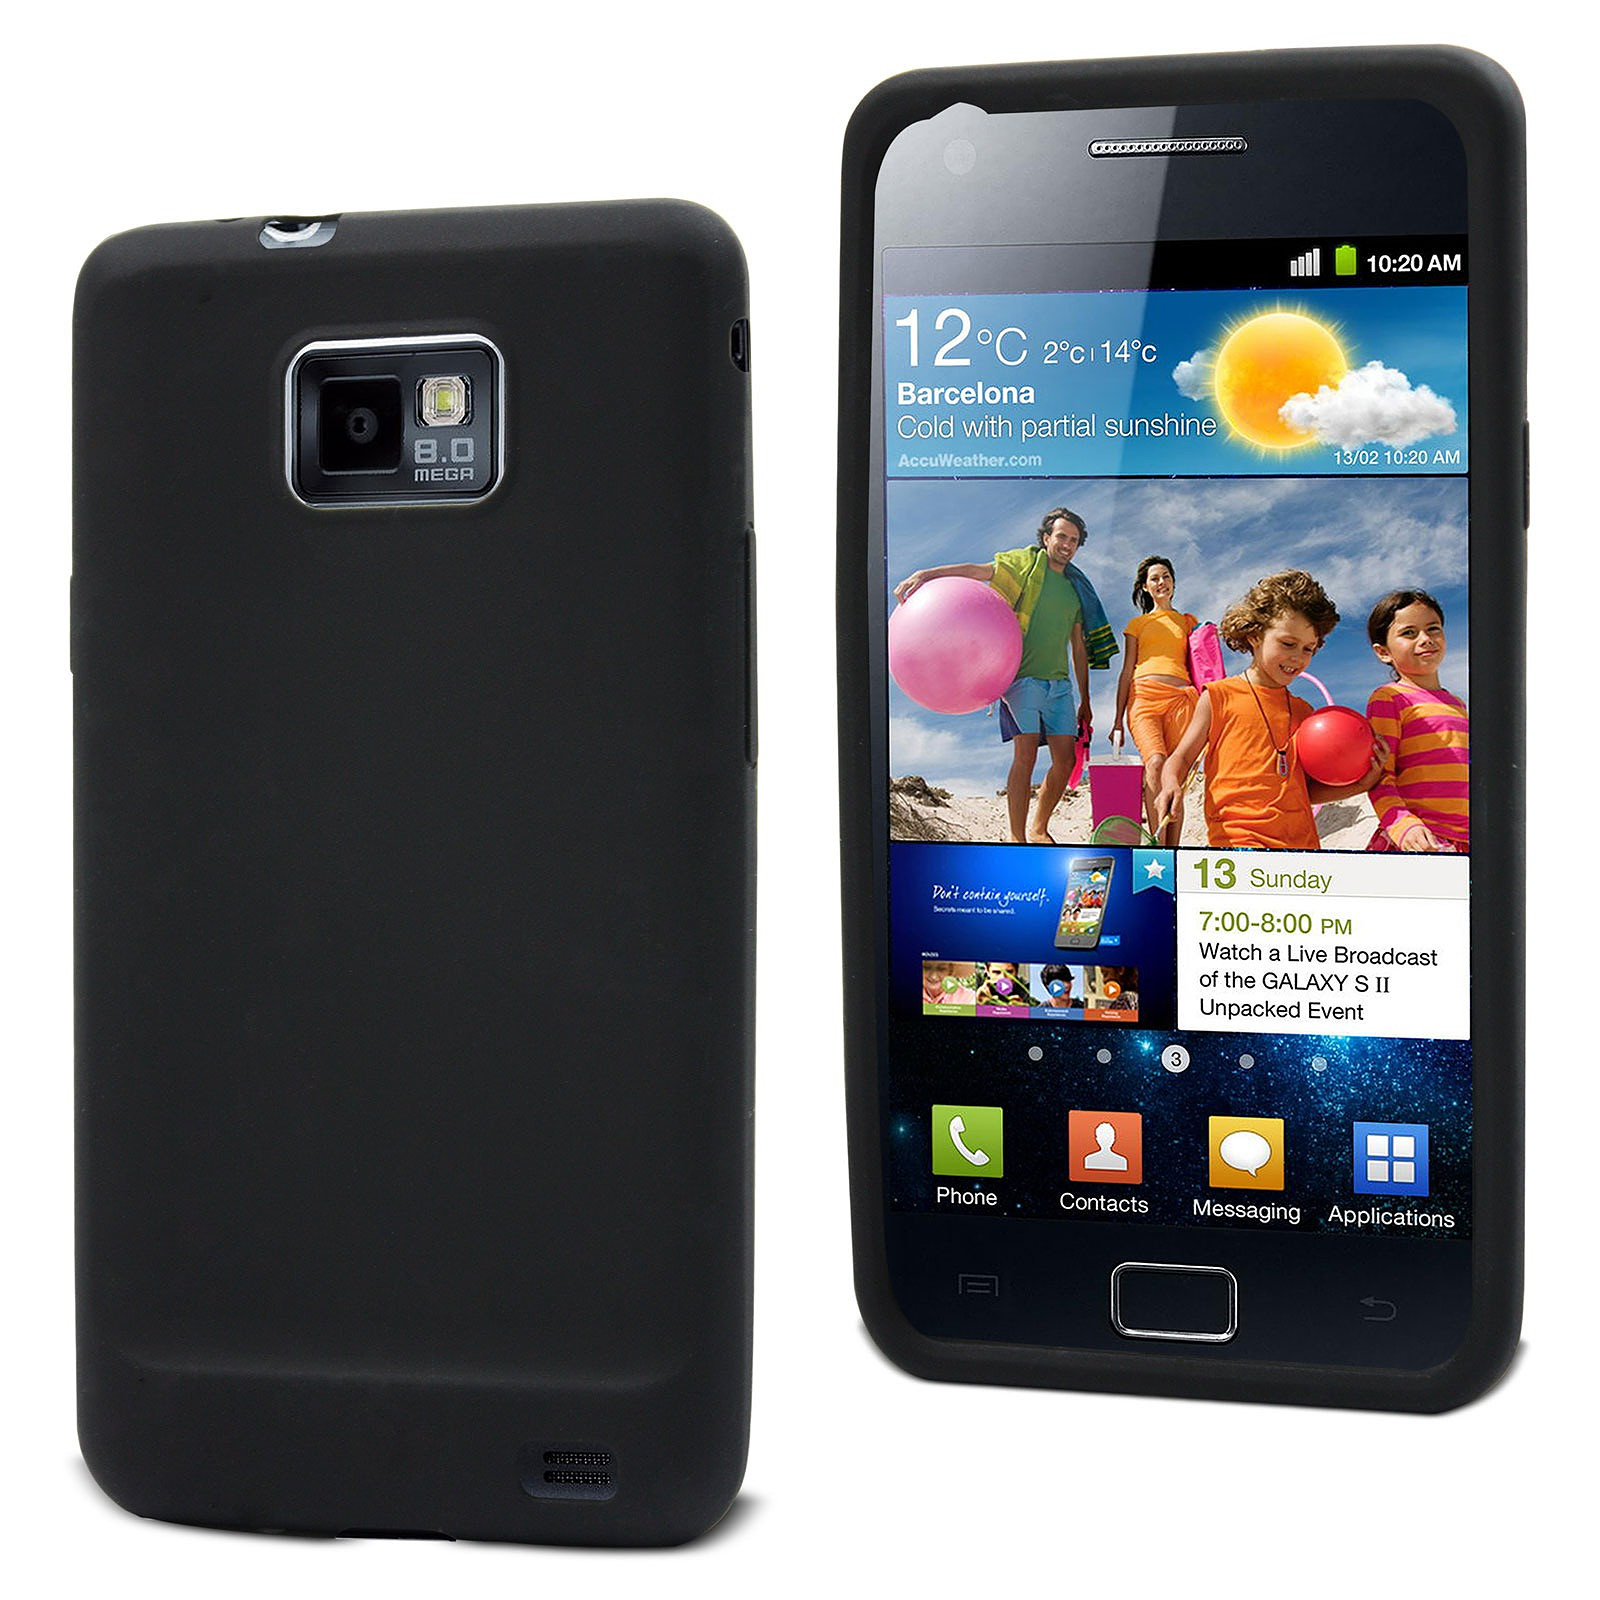 Muvit Housse silicone Noir pour Samsung i9100 Galaxy S II